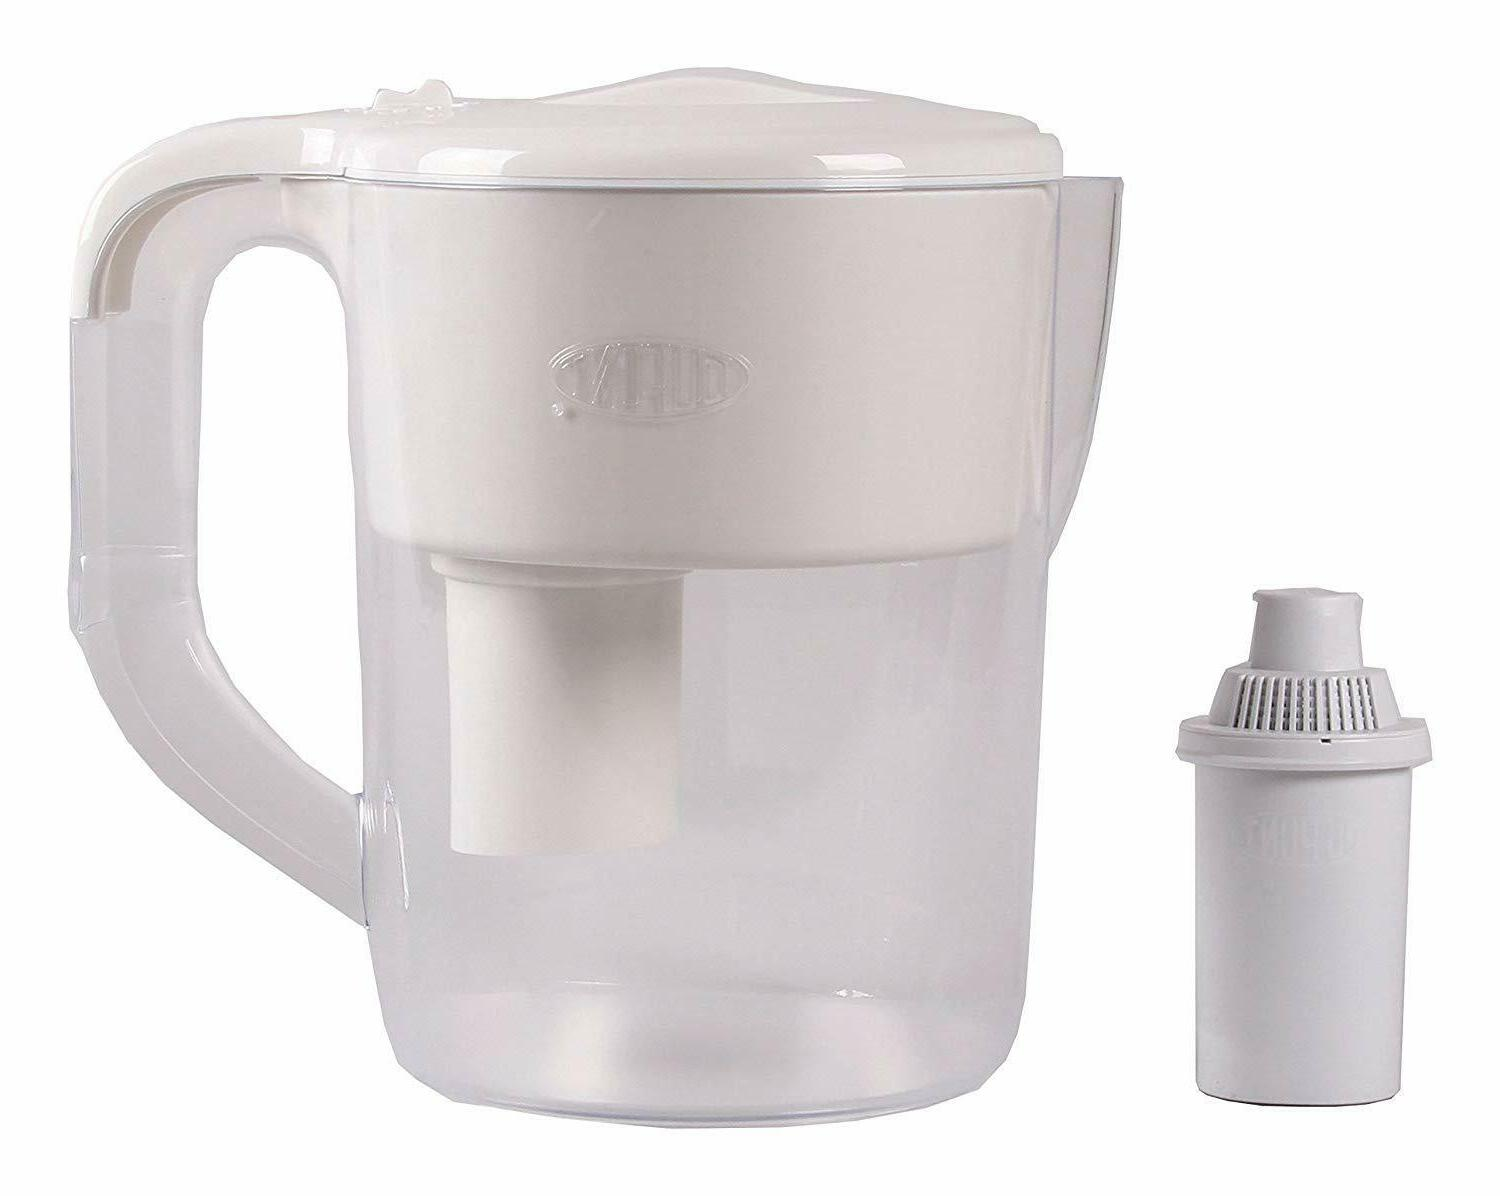 wfpt100 water filter pitcher system